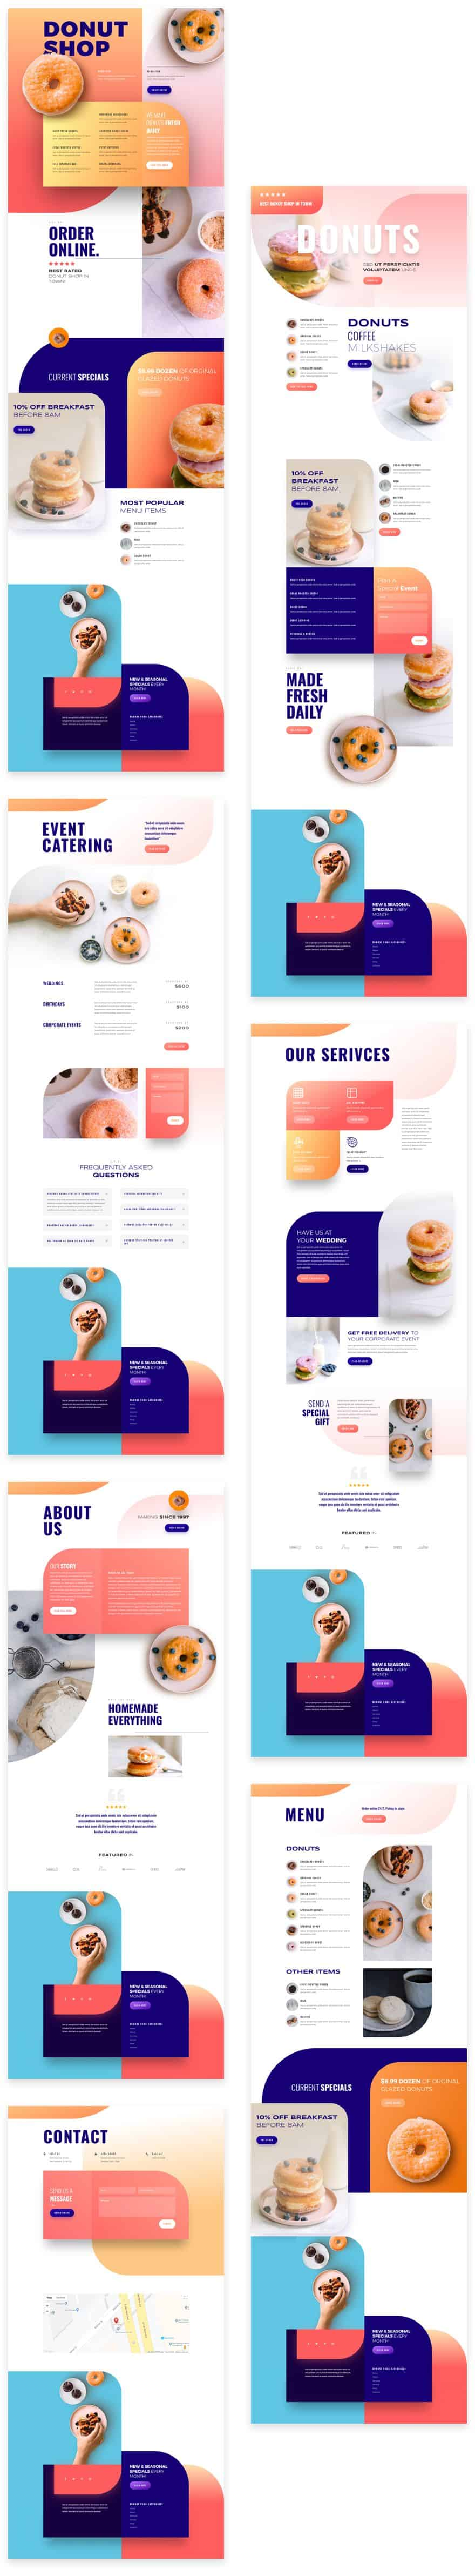 Donut Shop Divi Layout Pack